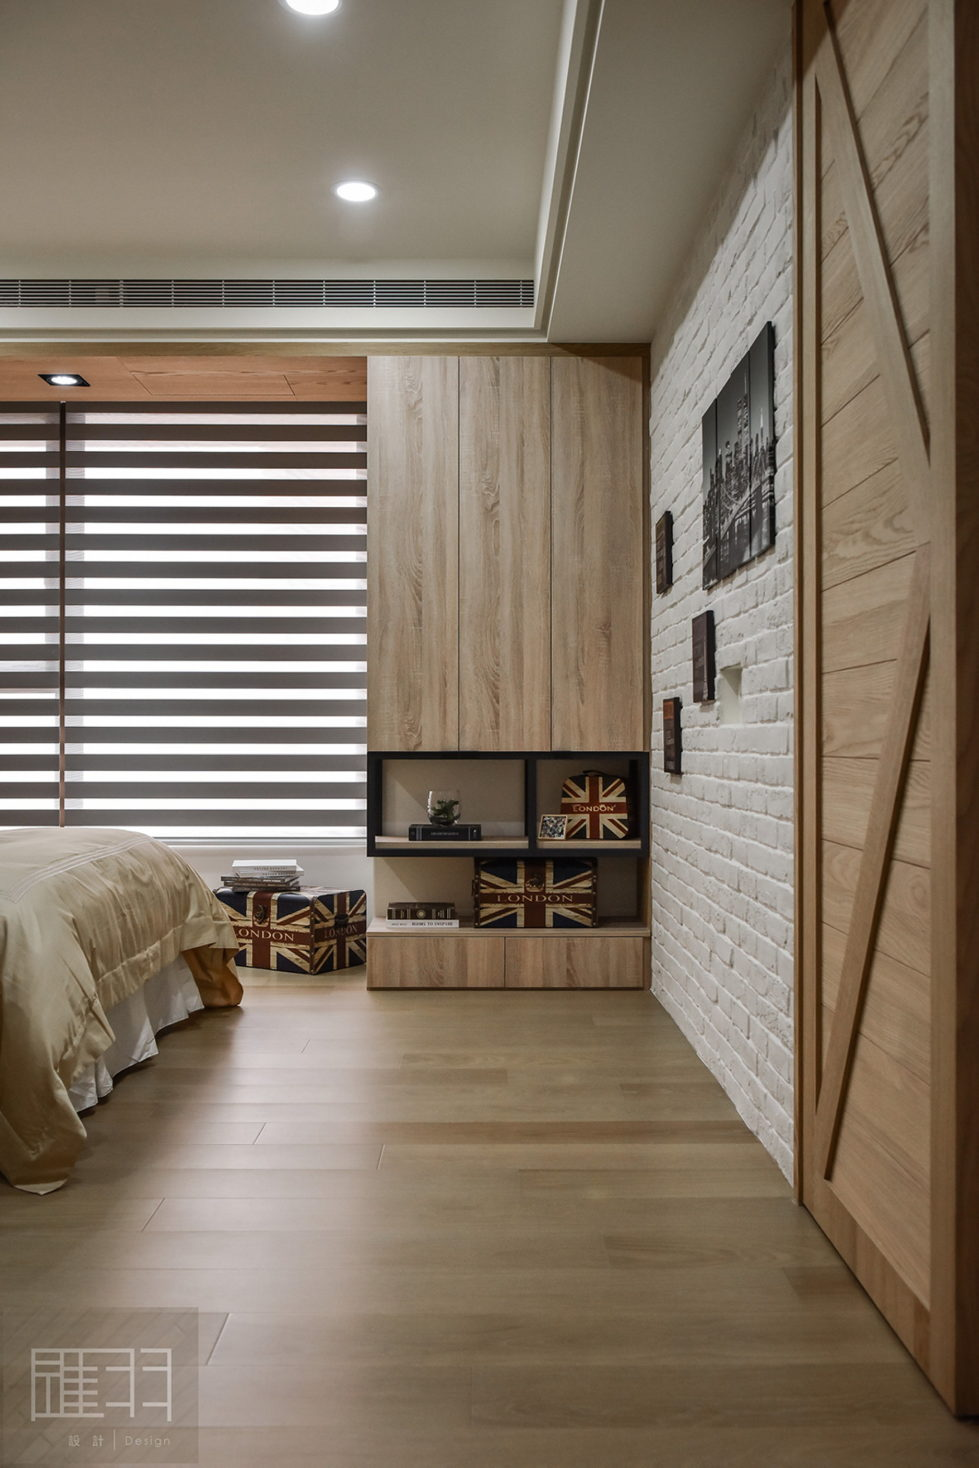 Interior Of The Apartment In Taiwan From Manson Hsiao, Hui-yu Interior Design Studio 20